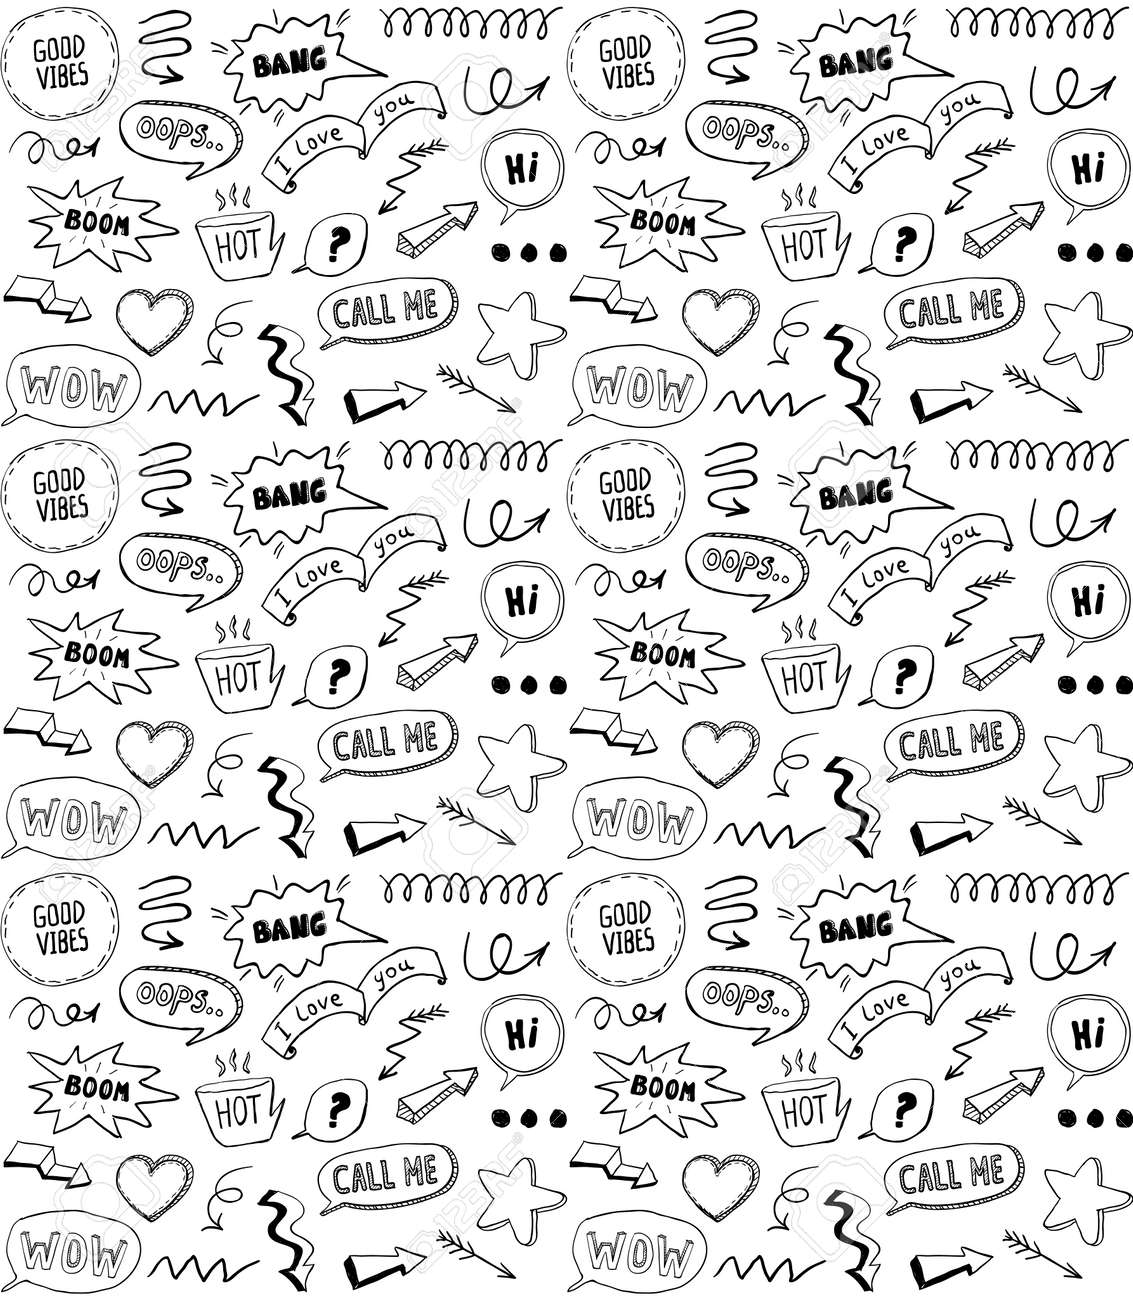 Black and white doodle style seamless pattern with comic style elements, hand drawn vector illustration - 131118232